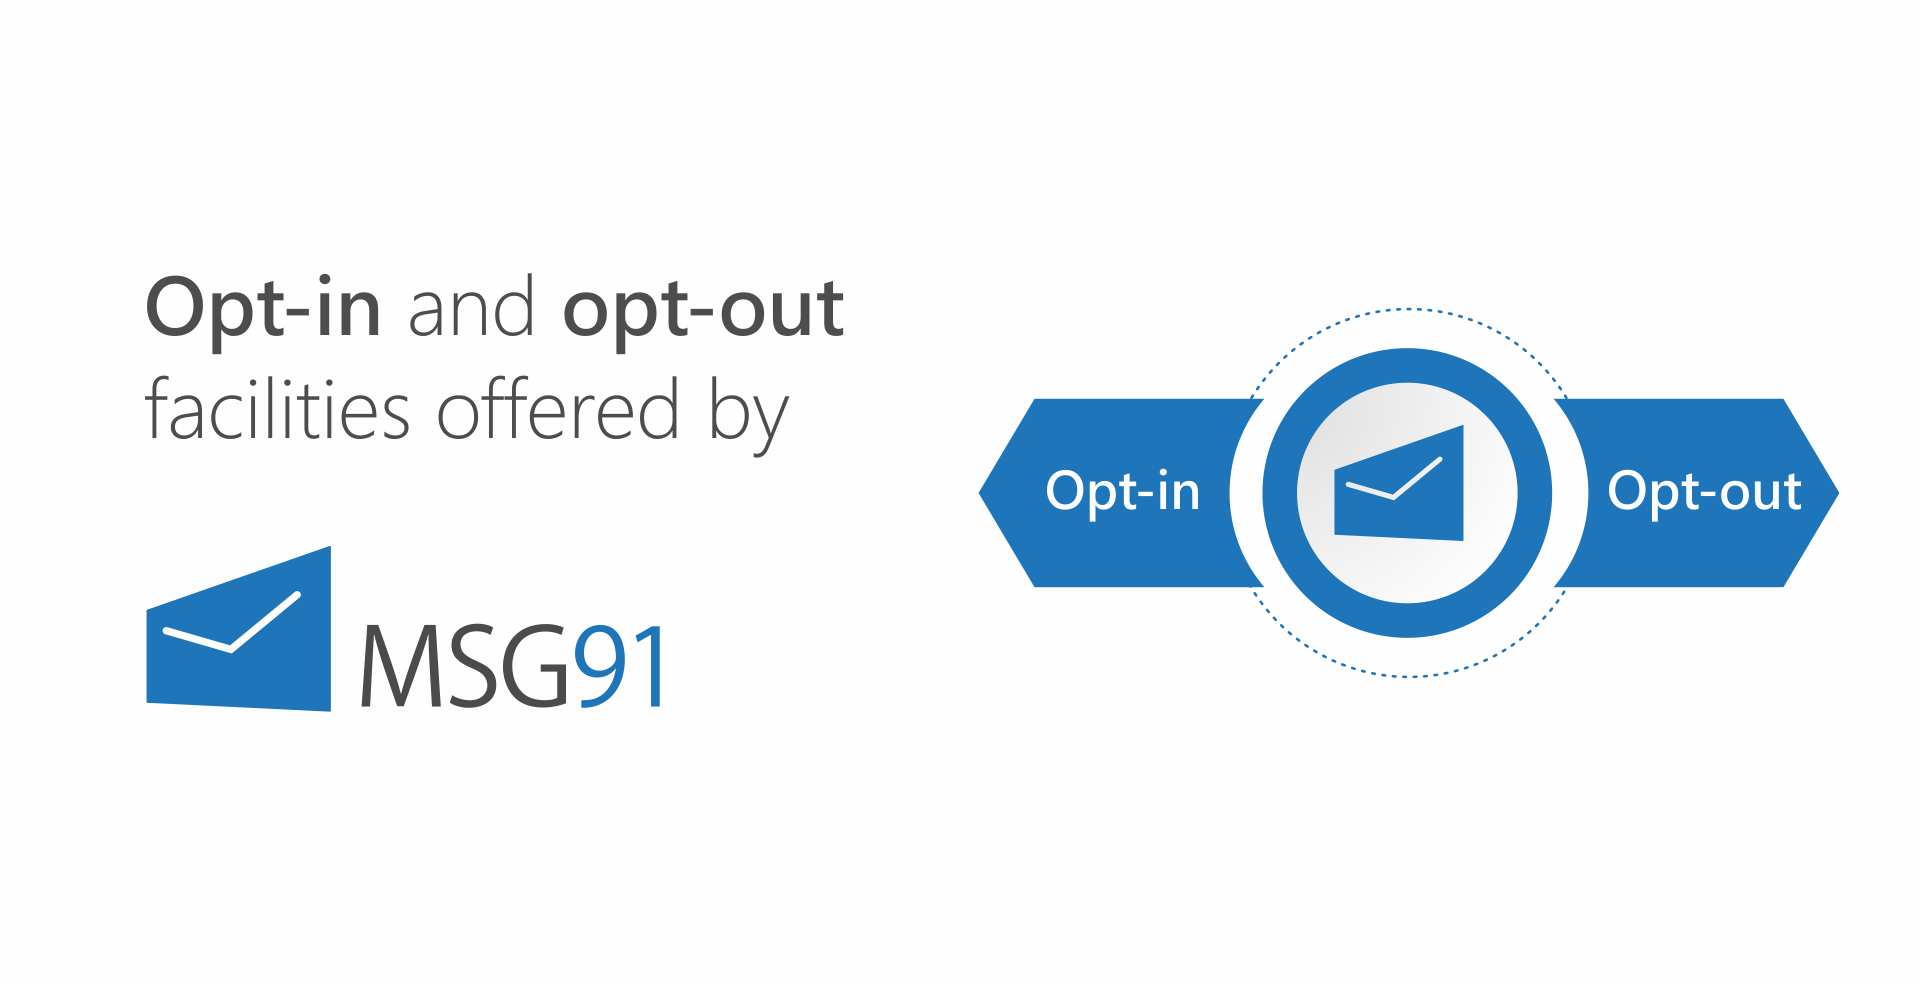 Opt-in and opt-out facilities offered by Msg91